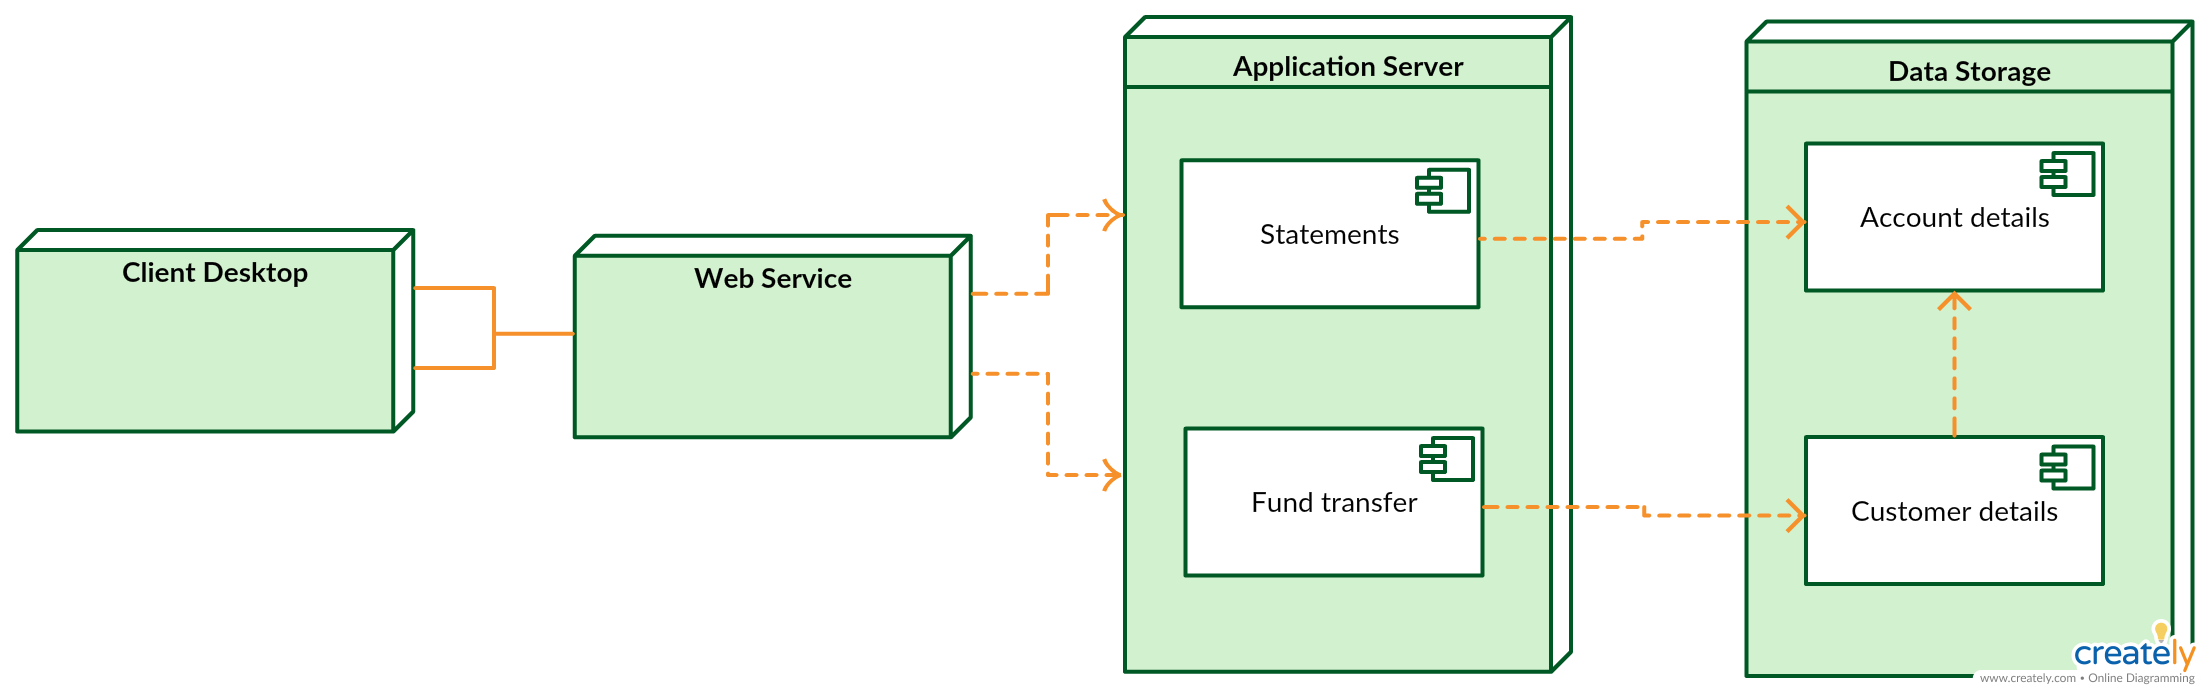 hight resolution of deployment diagram for online banking transaction system this diagram illustrates the deployment diagram template for online bank transaction process